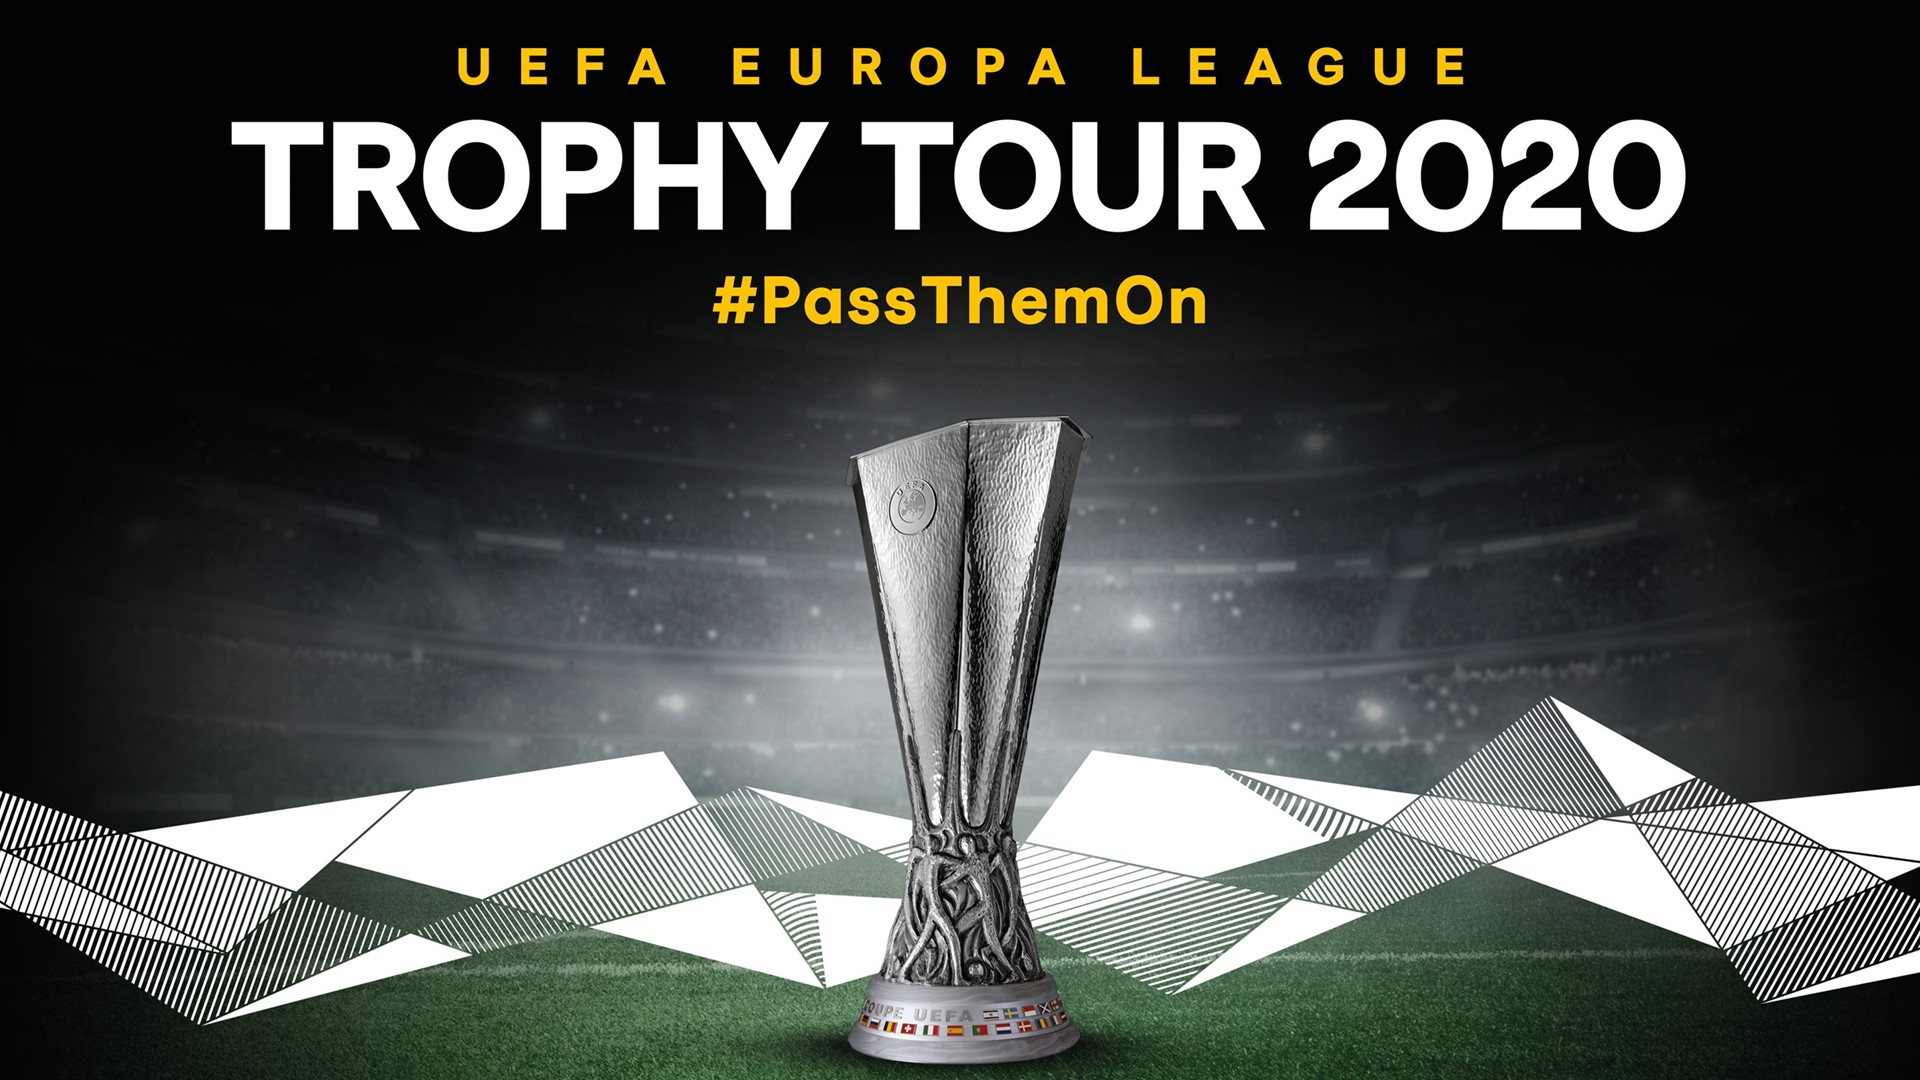 uefa europa league trophy tour driven by kia returns in 2020 uefa europa league trophy tour driven